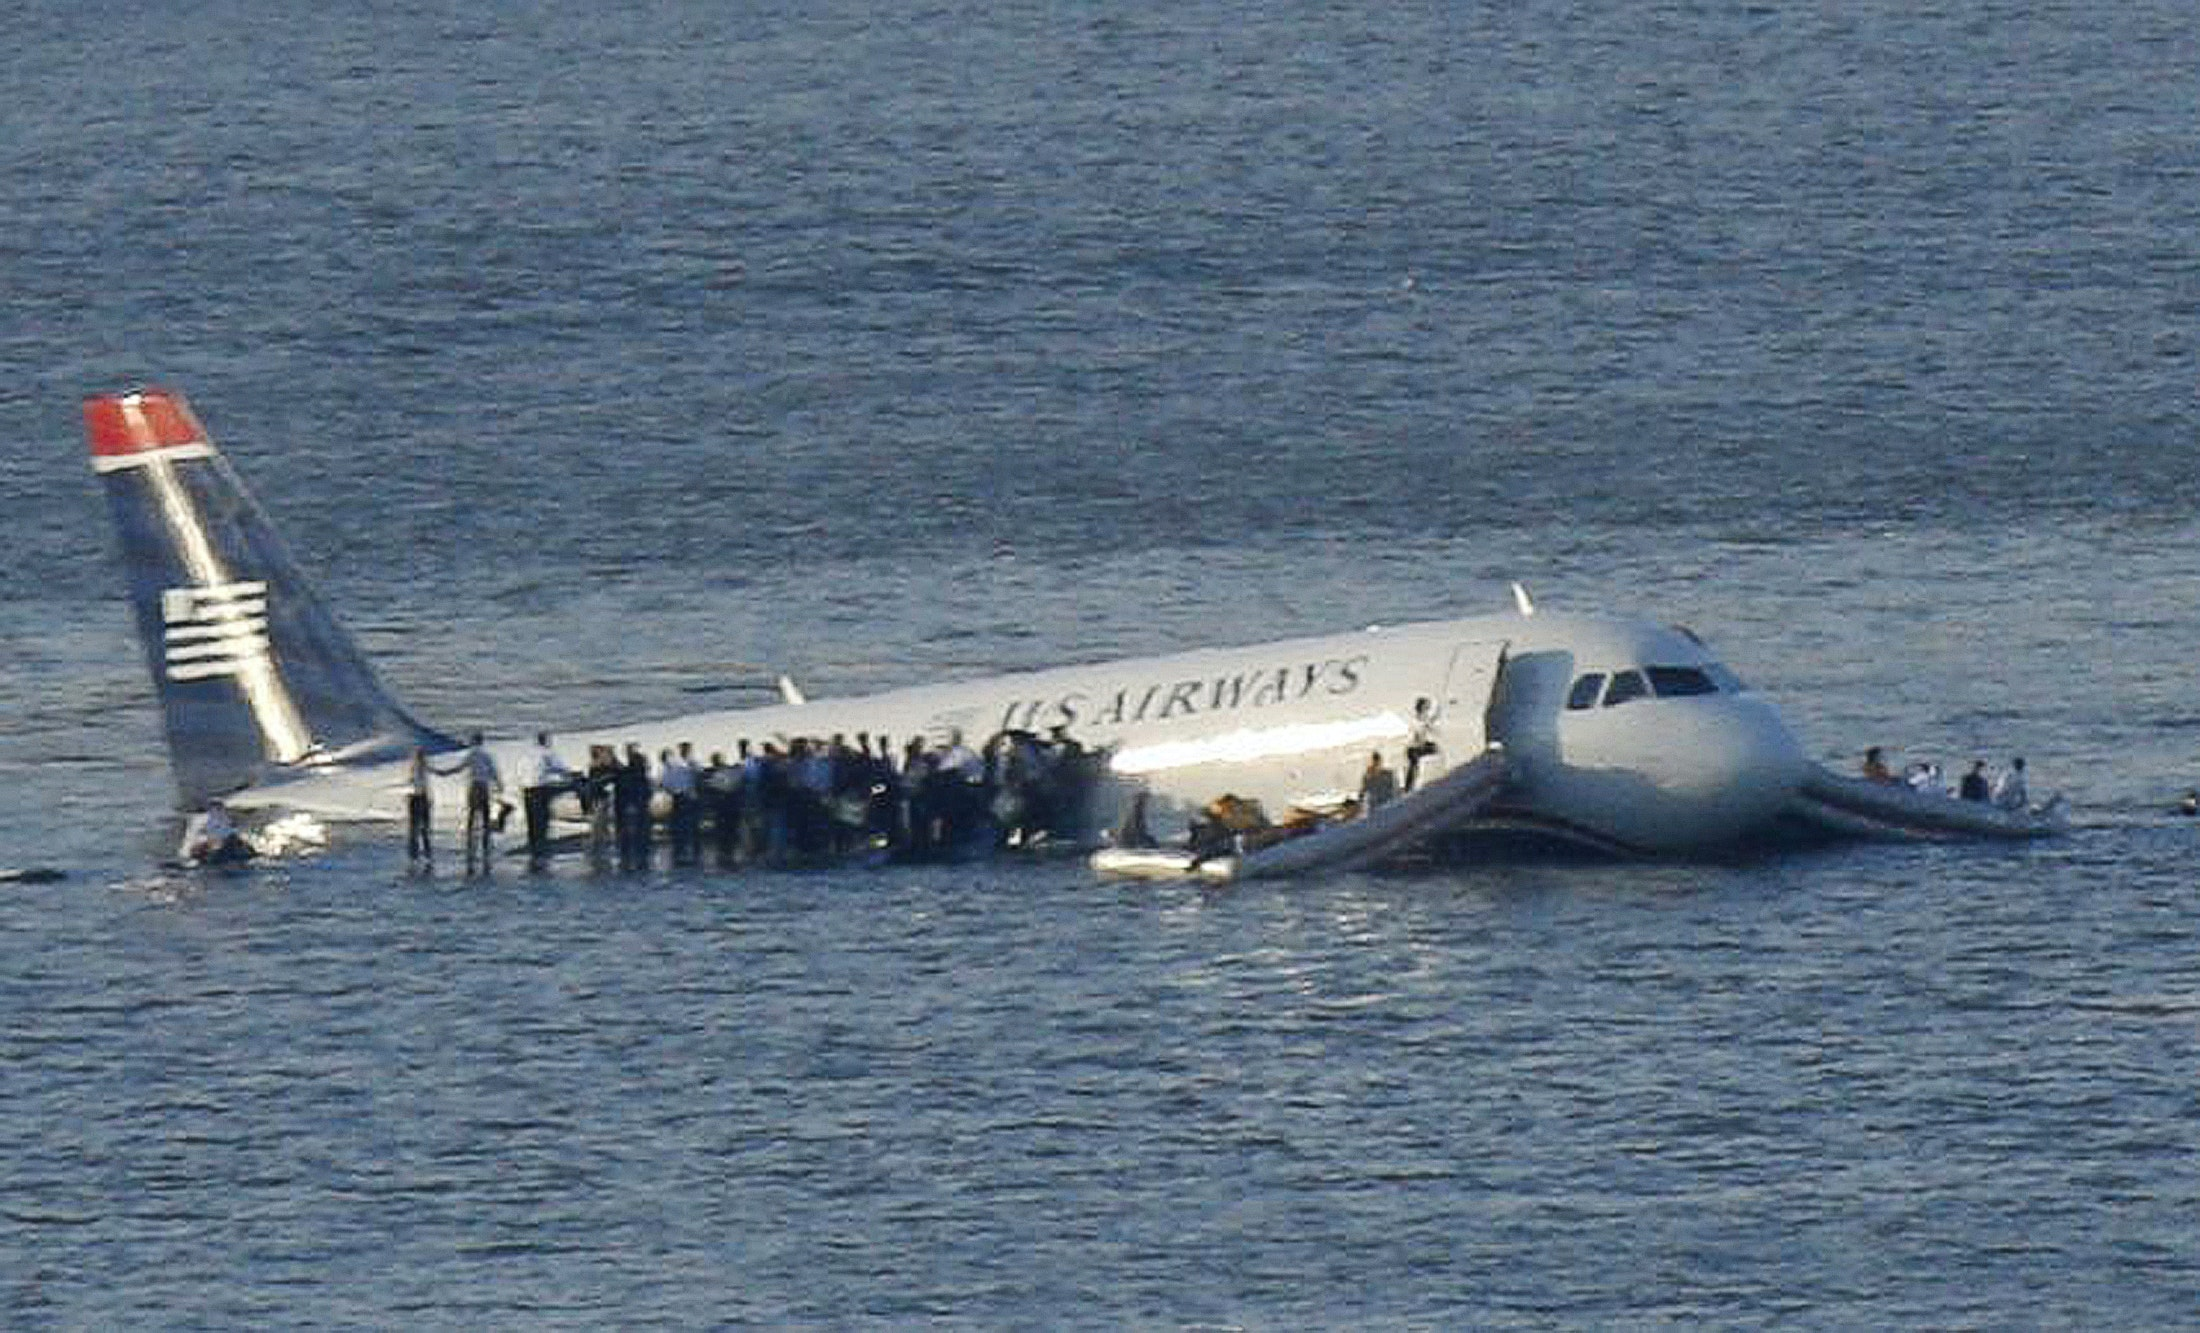 Plane Collision Over the Hudson